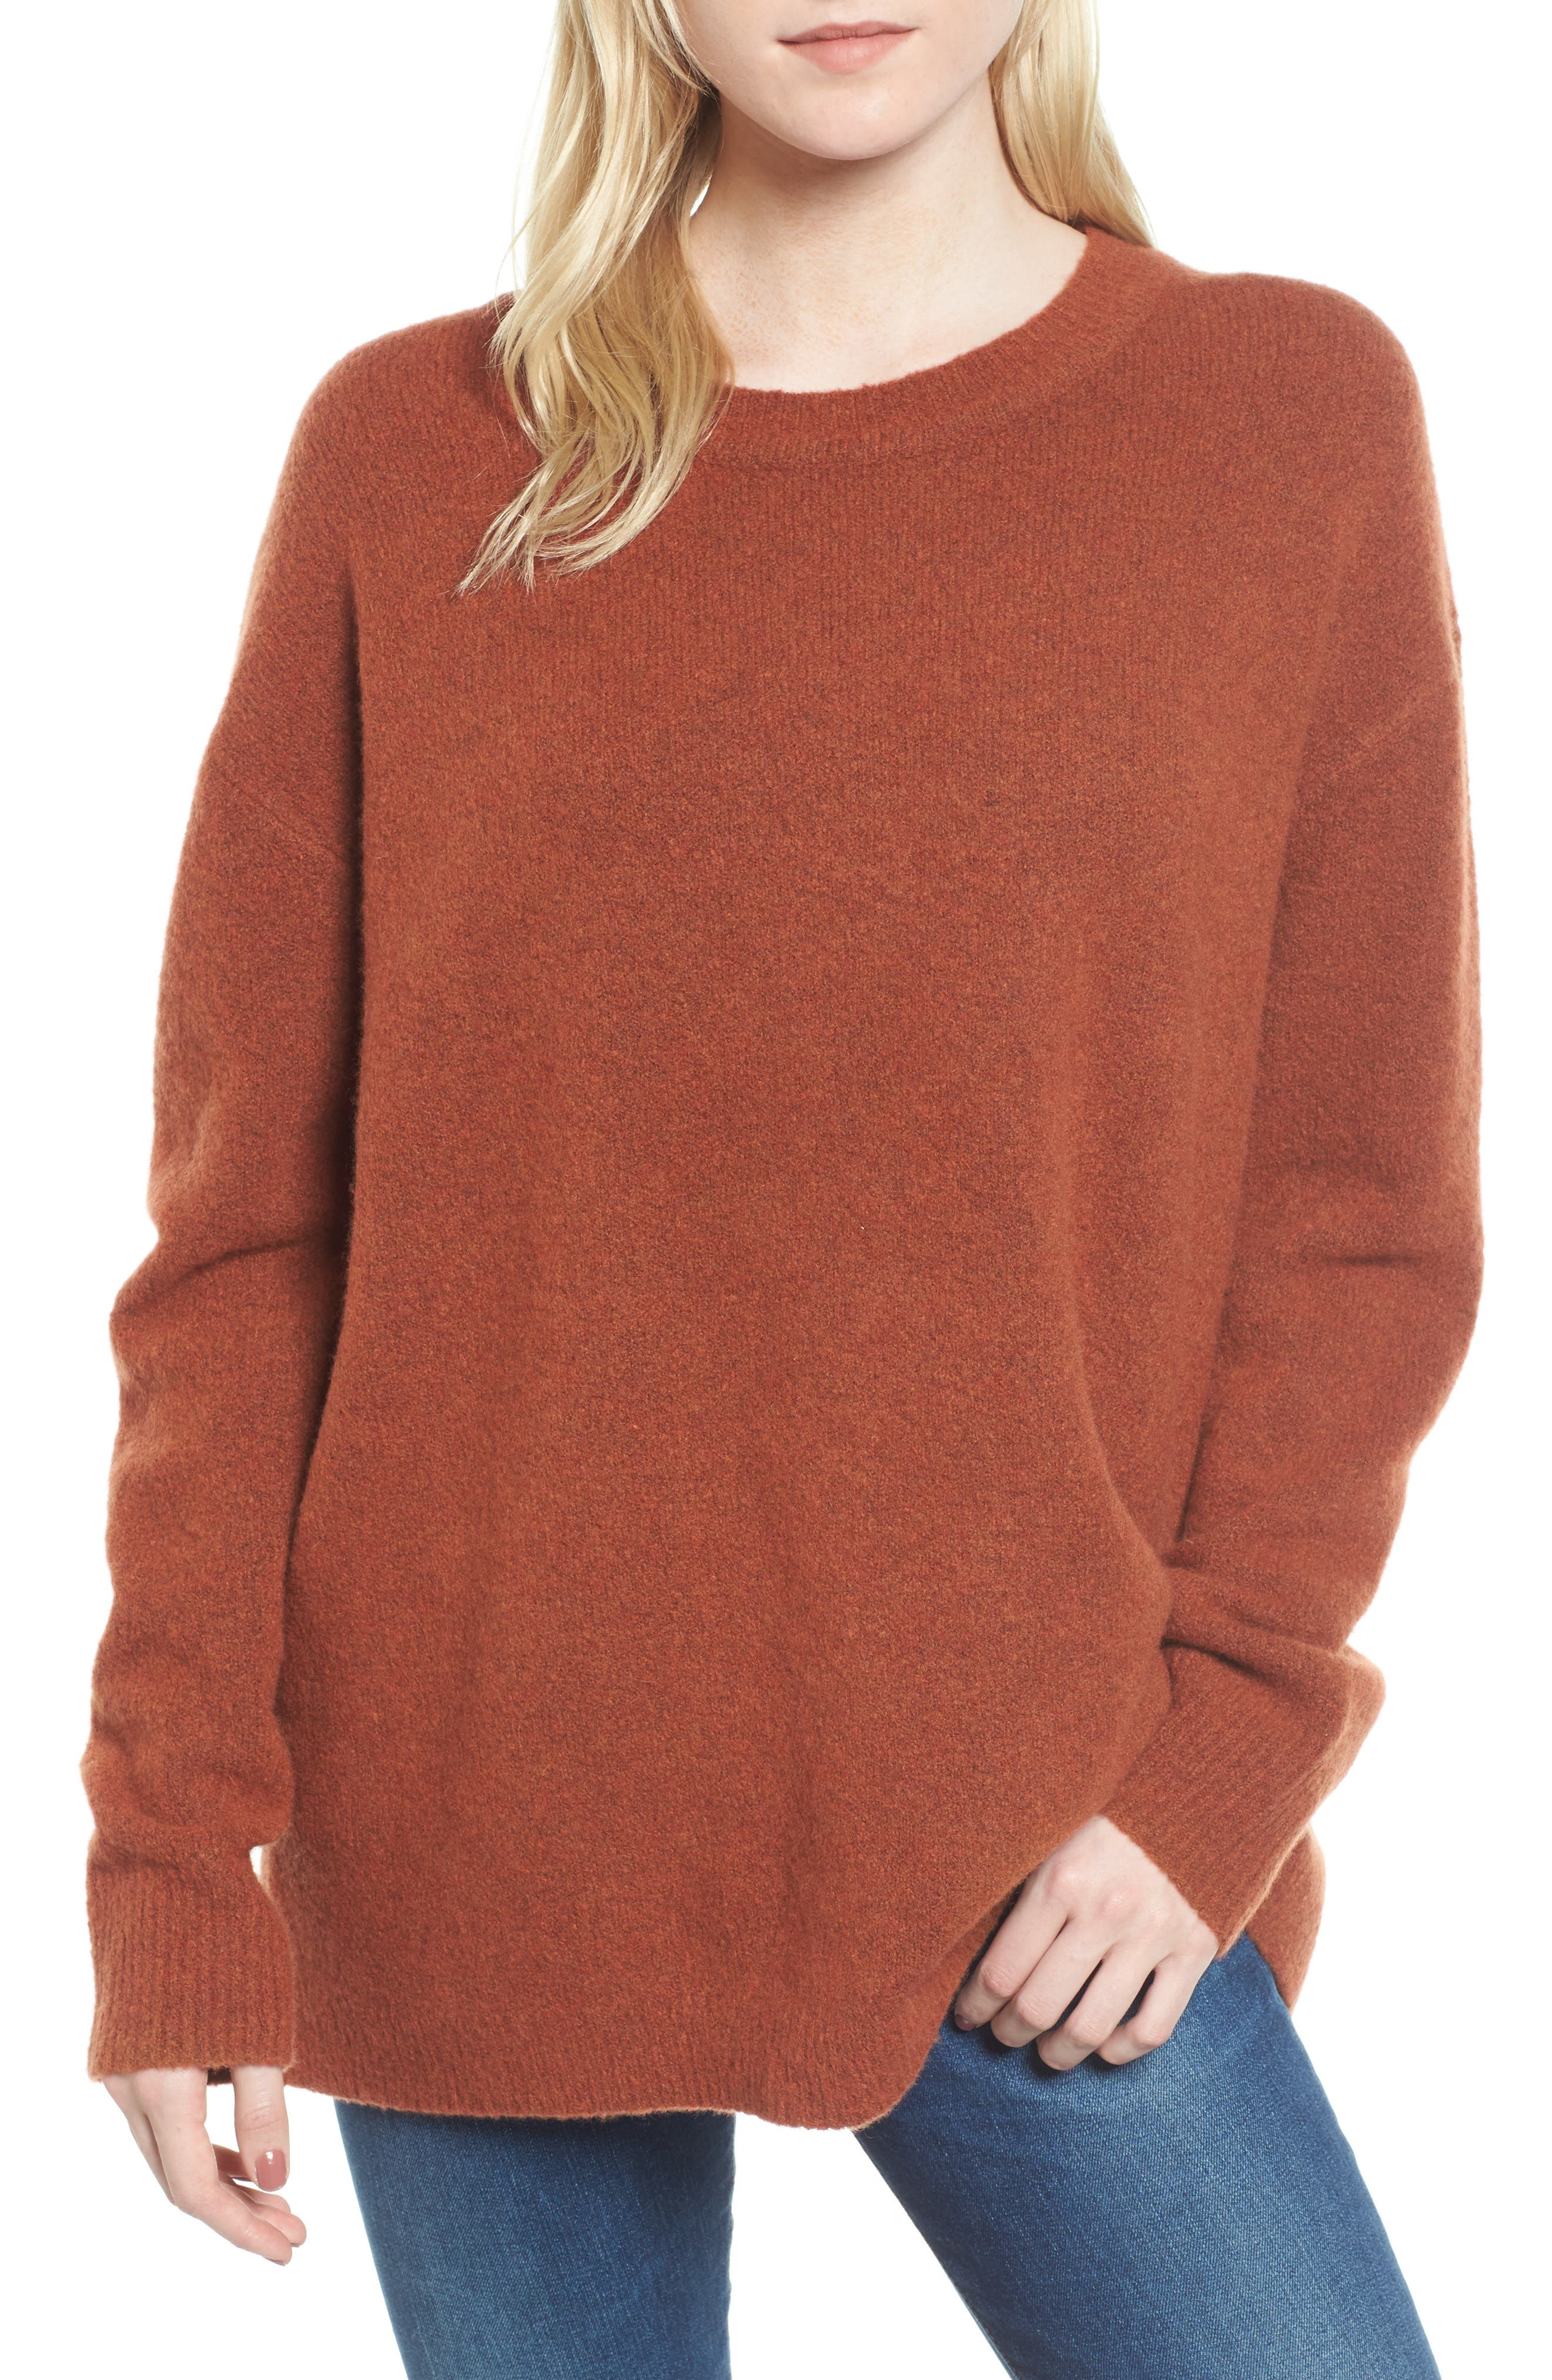 Main Image - James Perse Oversize Cashmere Sweater